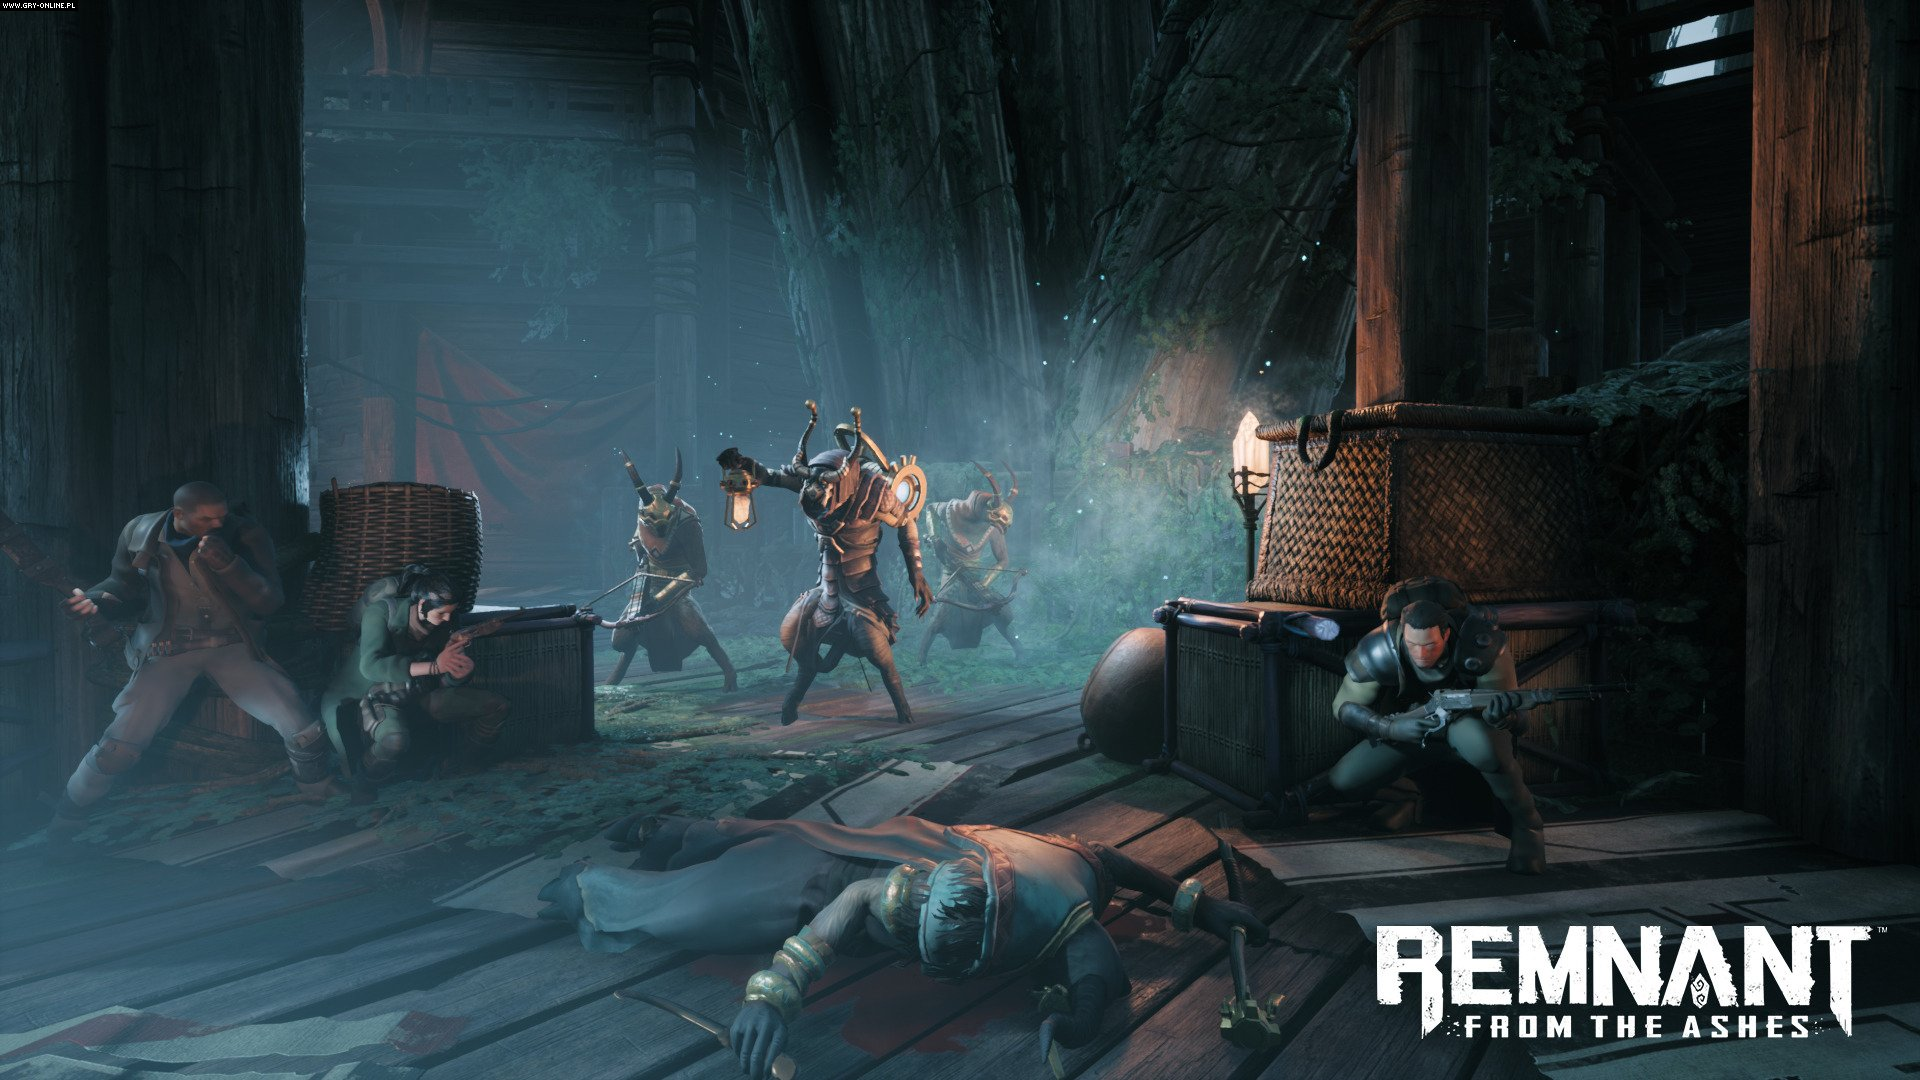 Remnant: From the Ashes PC, PS4, XONE Gry Screen 11/21, Gunfire Games, Perfect World Entertainment